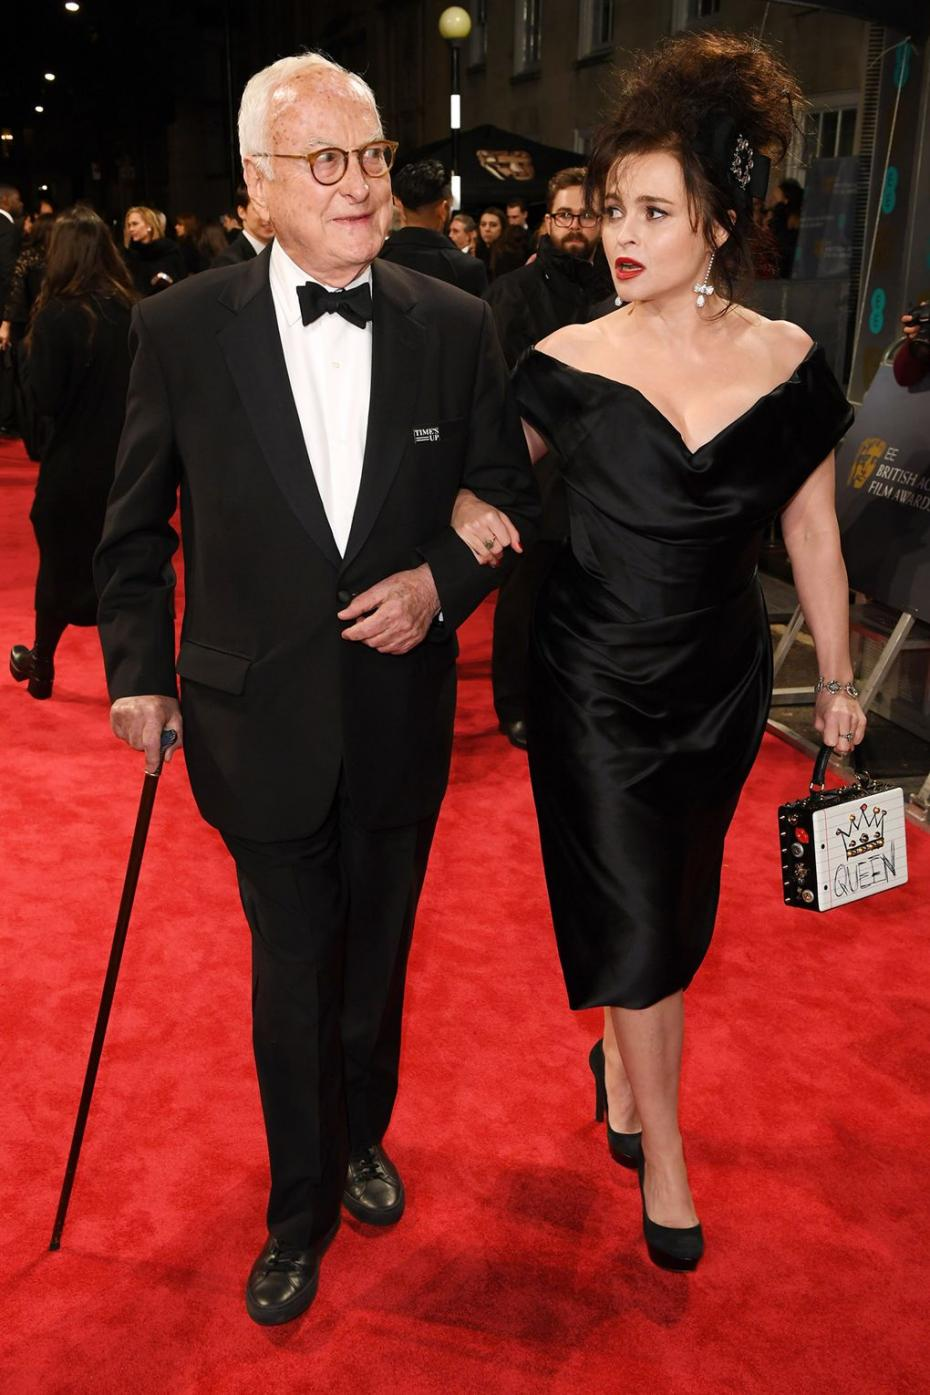 James Ivory and Helena Bonham Carter